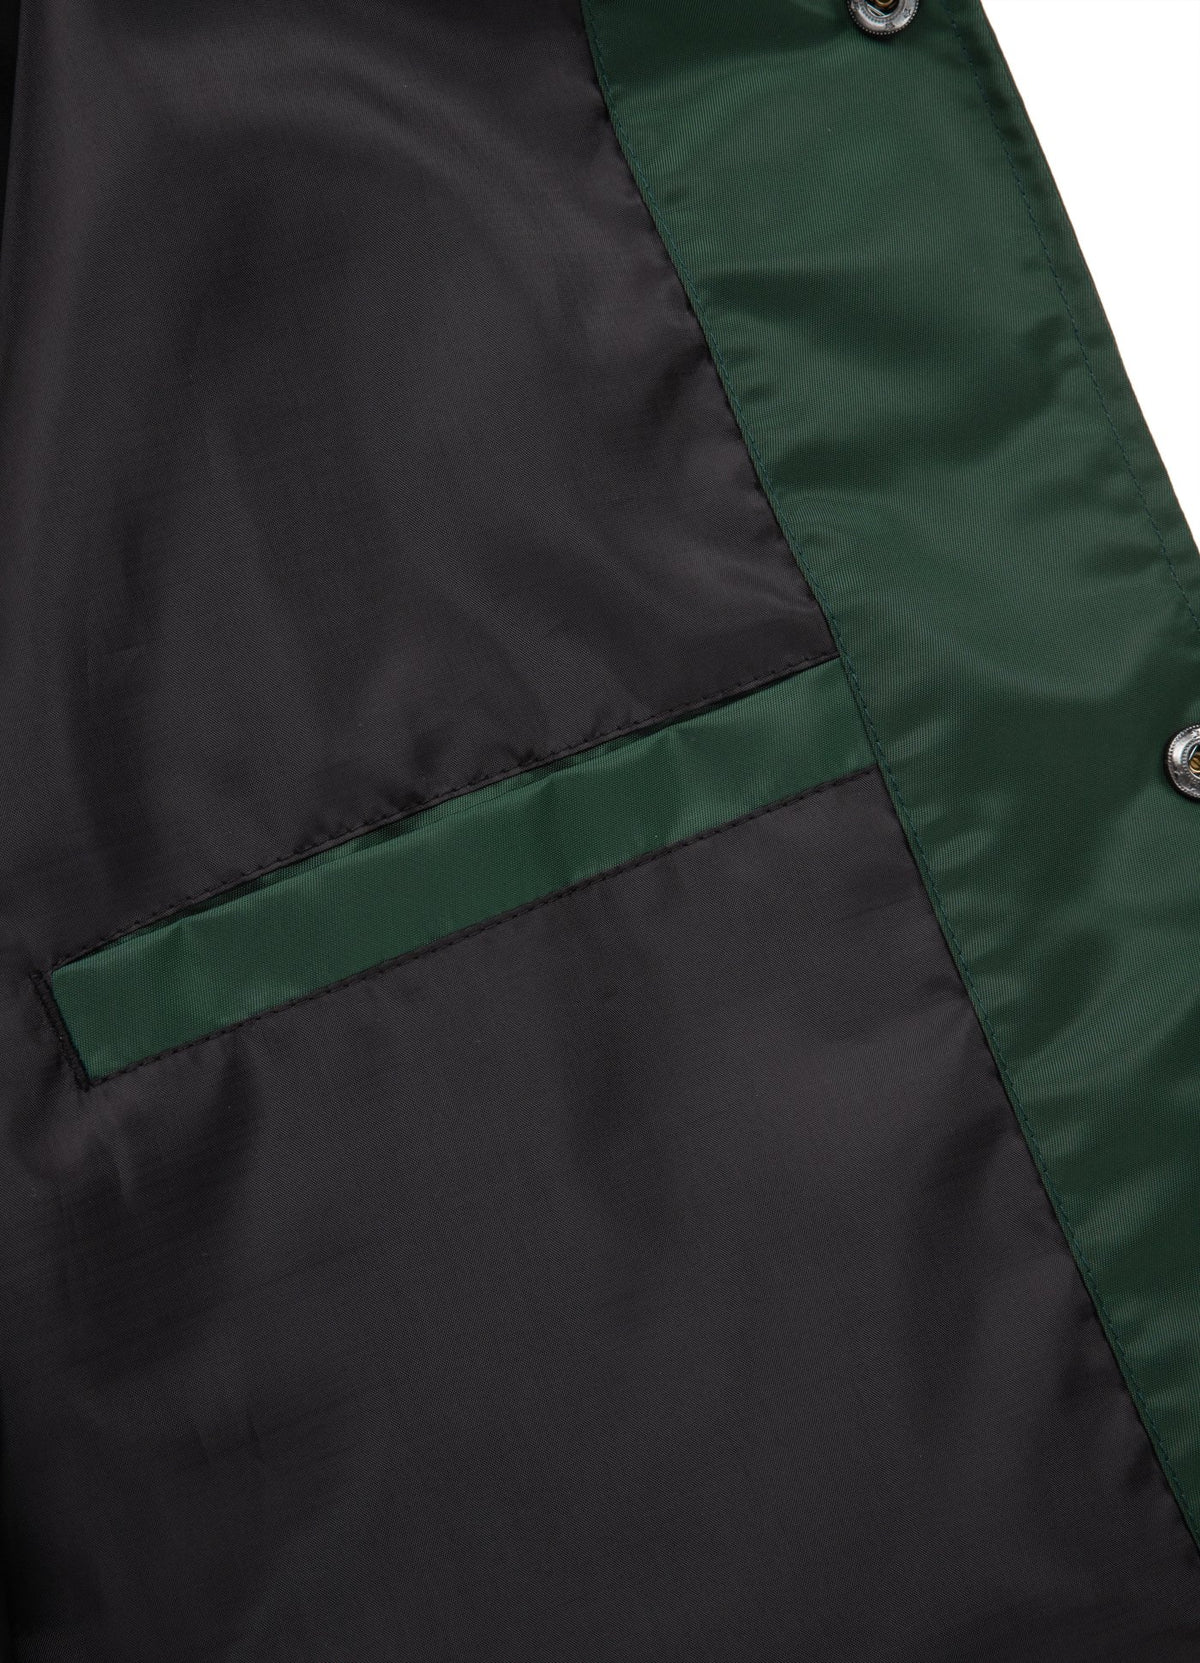 CLANTON Nylon Jacket Dark Green - Pitbull West Coast U.S.A.